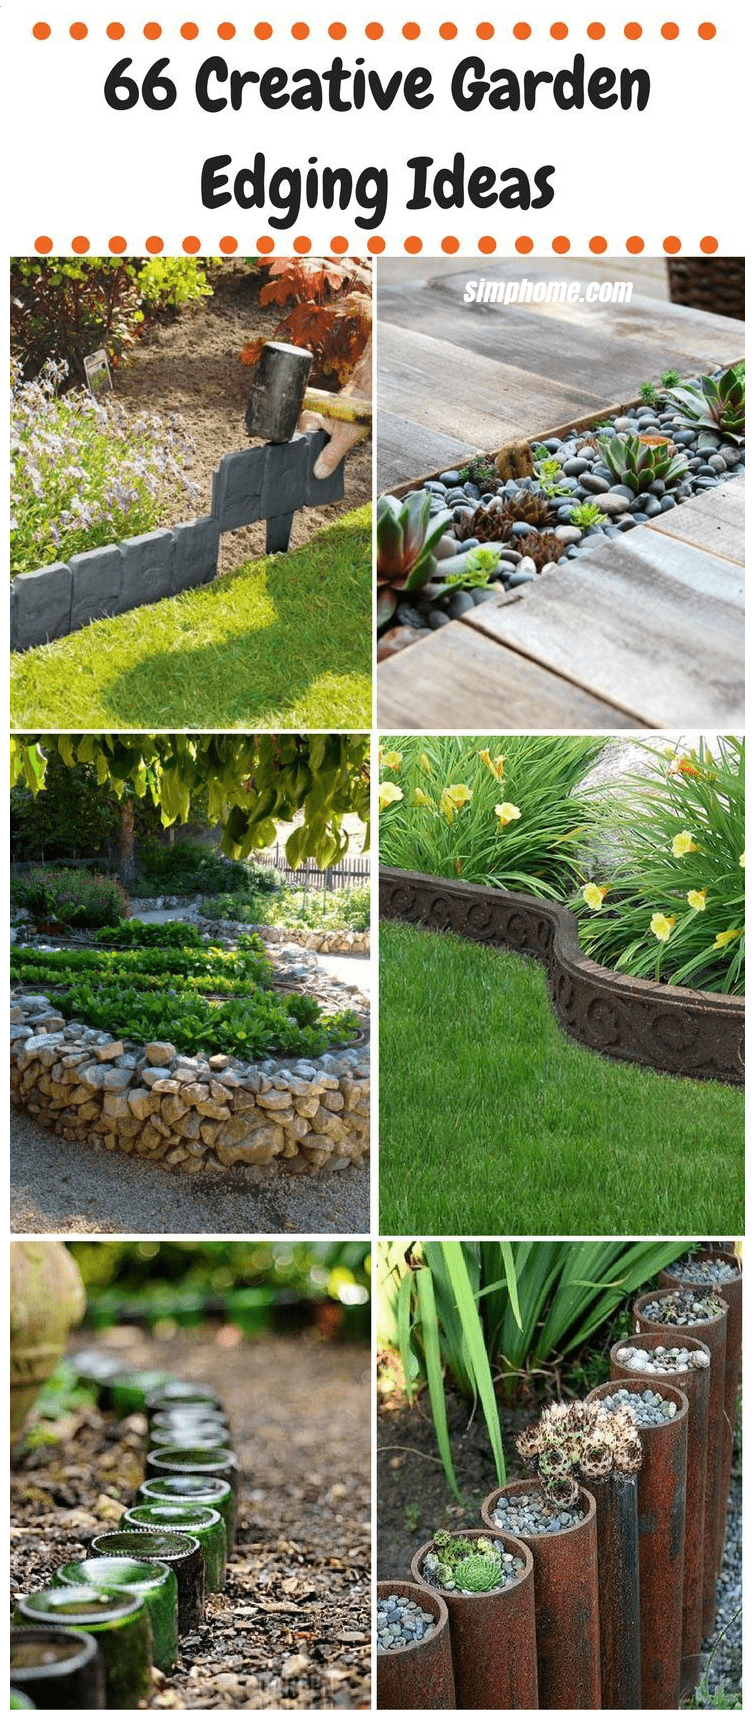 66 creative garden edging ideas gardening tips garden edging inside 10 diy garden edging ideas most of the amazing and gorgeous